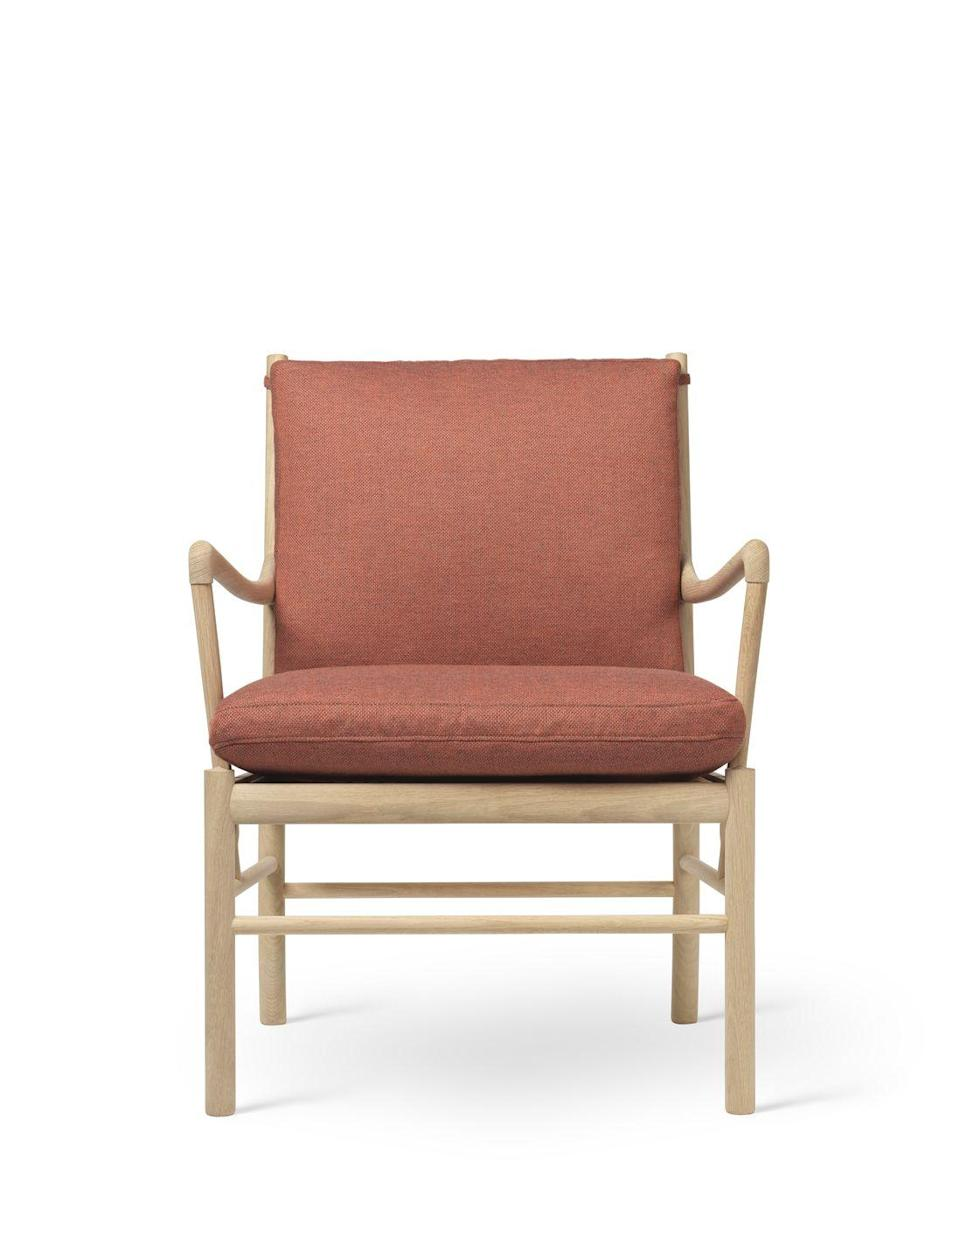 """<p>Created by Danish minimalist Ole Wanscher for Carl Hansen & Søn in 1949, the 'Colonial' chair strikes a careful balance between traditional and modernity, and luxury and restraint. Although seemingly simple and pared-back, slender, carved arms and a choice of refined fabrics –including butter-soft leather – provide a tactile experience for the sitter. From £1,819, <a href=""""https://www.carlhansen.com/en"""" rel=""""nofollow noopener"""" target=""""_blank"""" data-ylk=""""slk:carlhansen.com"""" class=""""link rapid-noclick-resp"""">carlhansen.com</a></p>"""